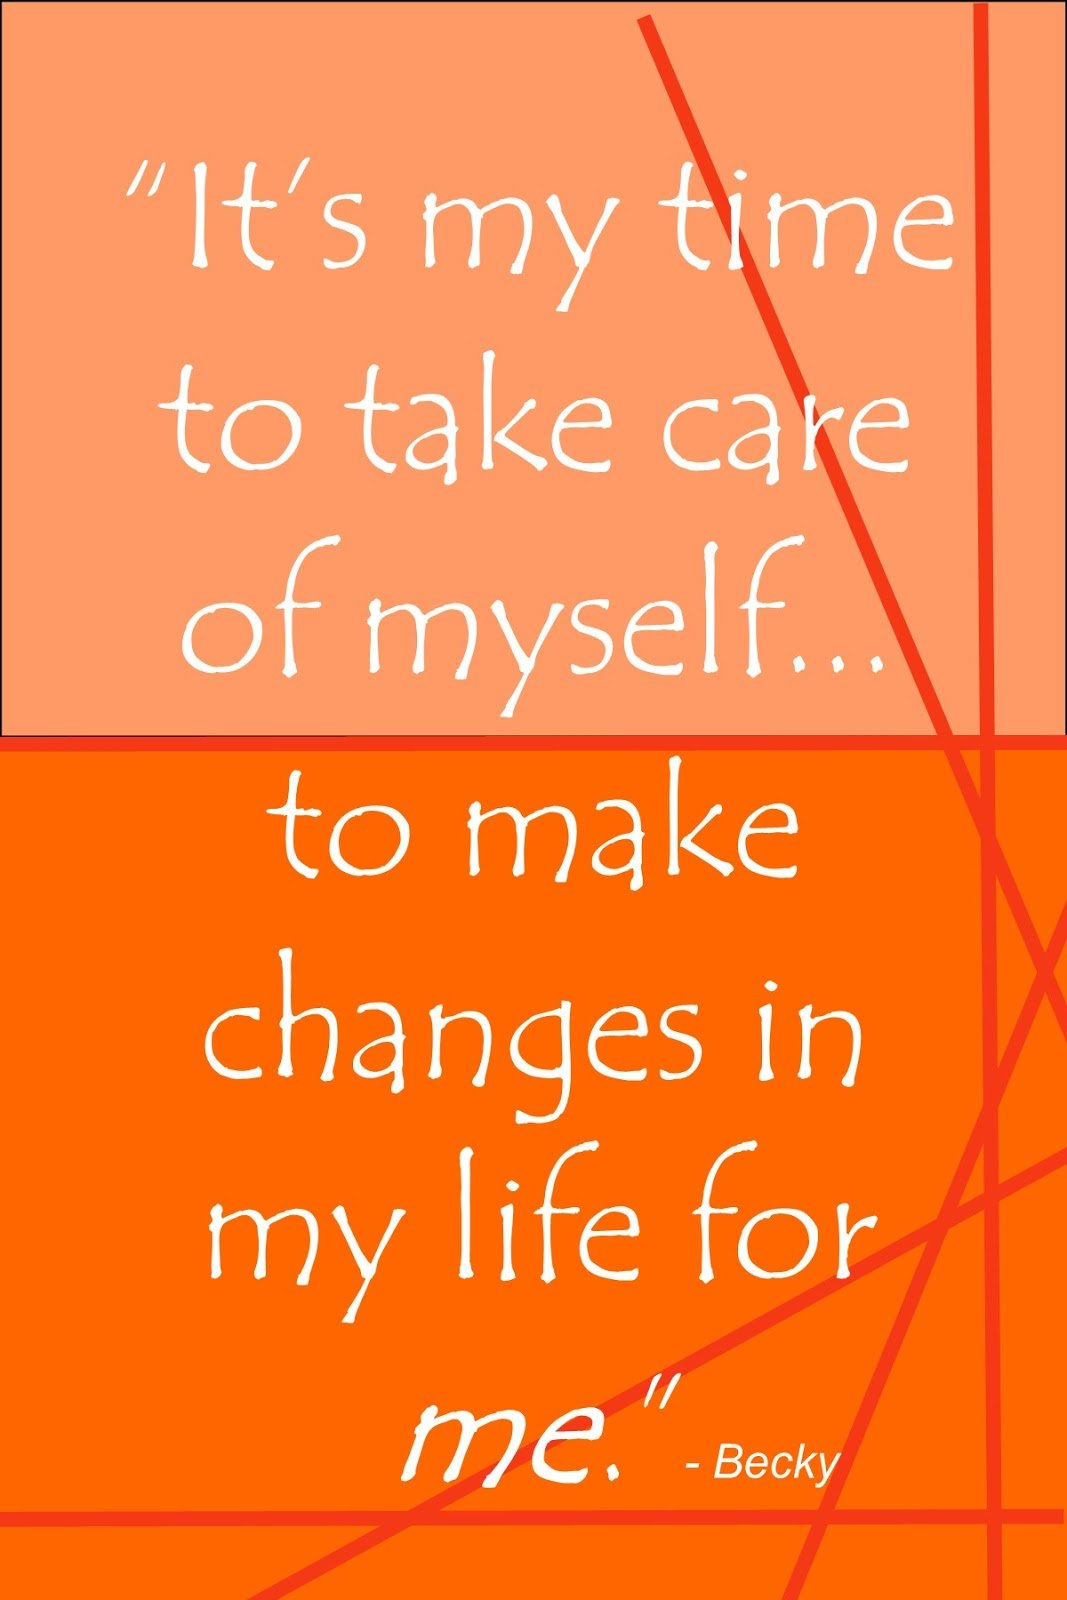 Quotes About Making Changes In Your Life. QuotesGram